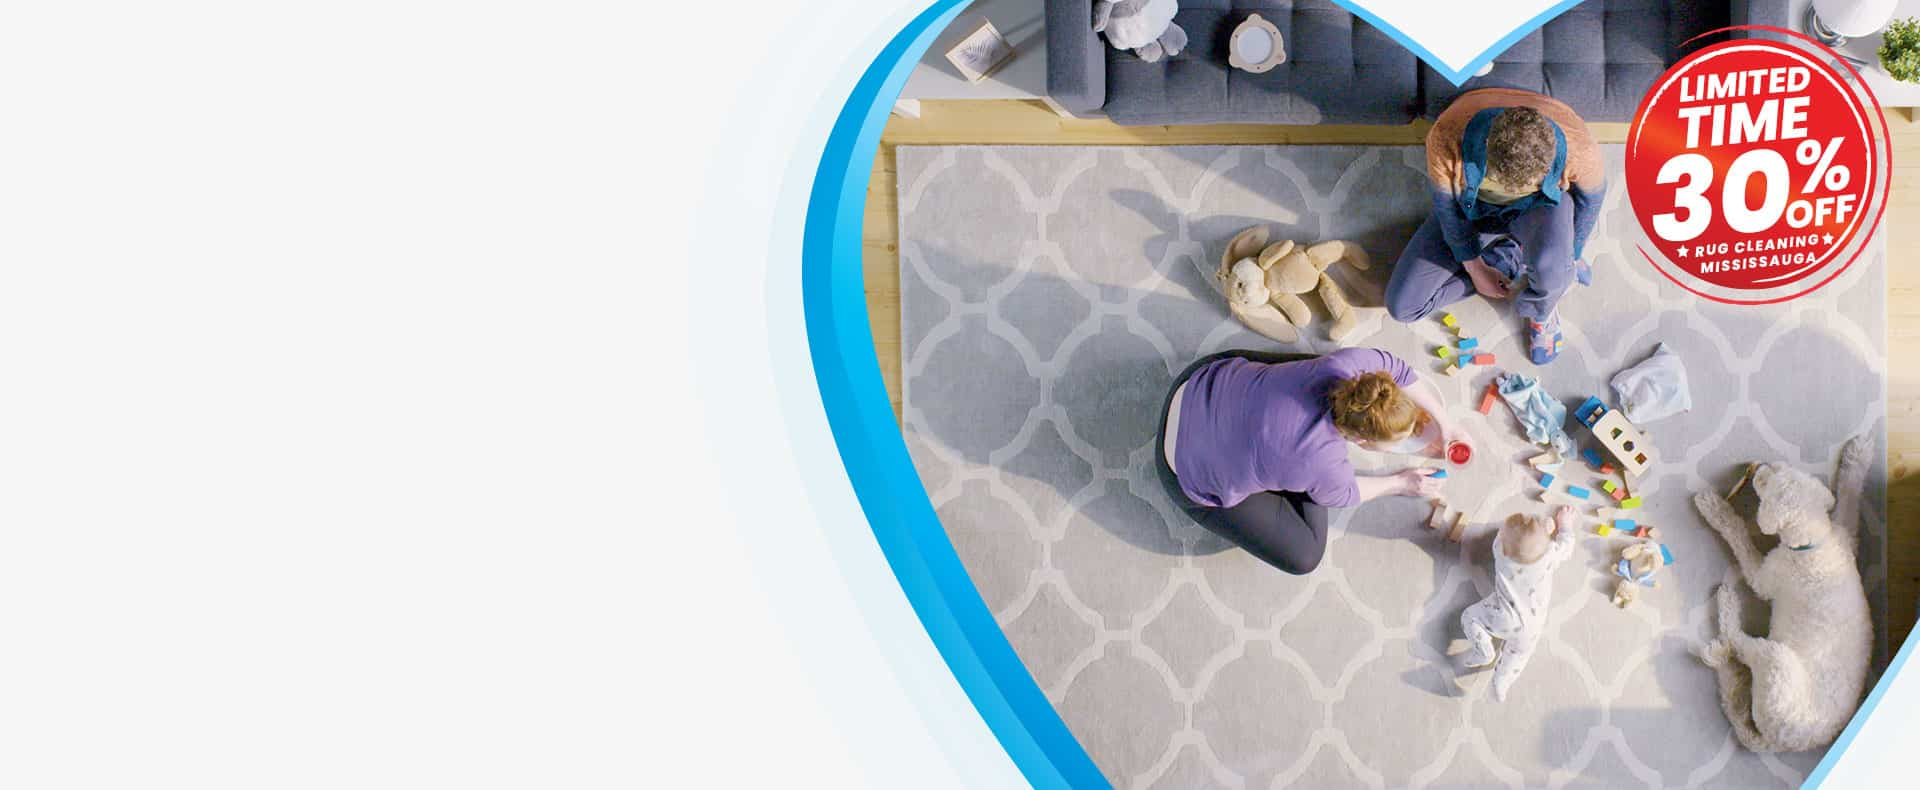 Rug Cleaning Mississauga